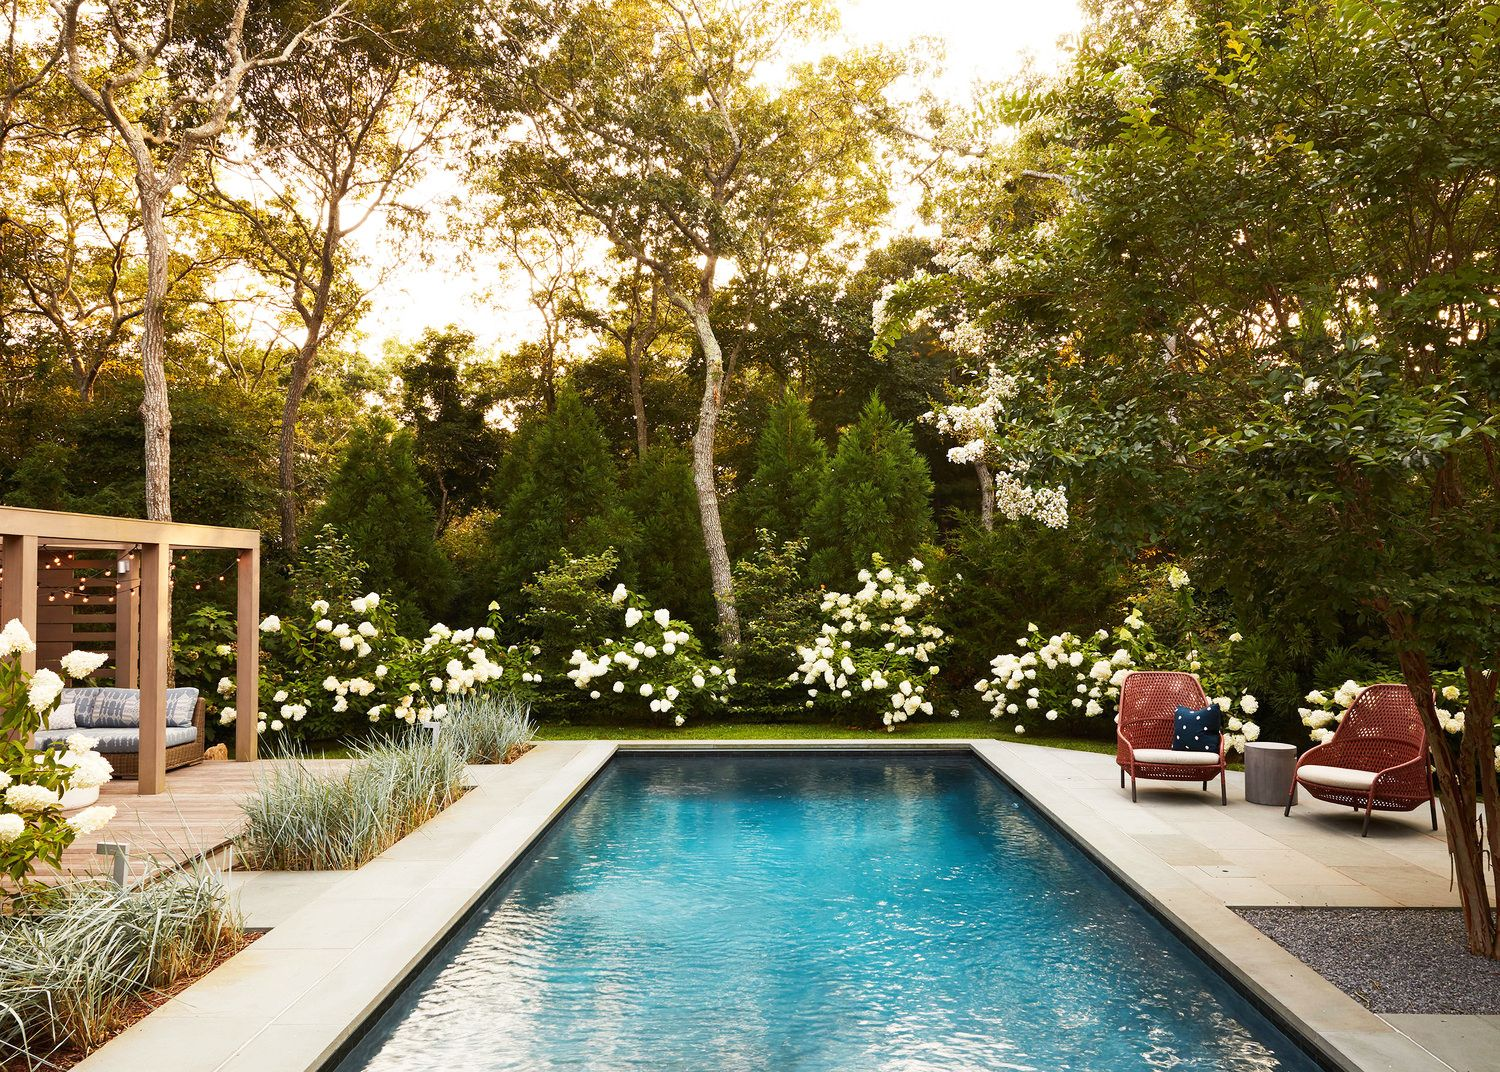 37 Breathtaking Backyard Ideas Outdoor Space Design